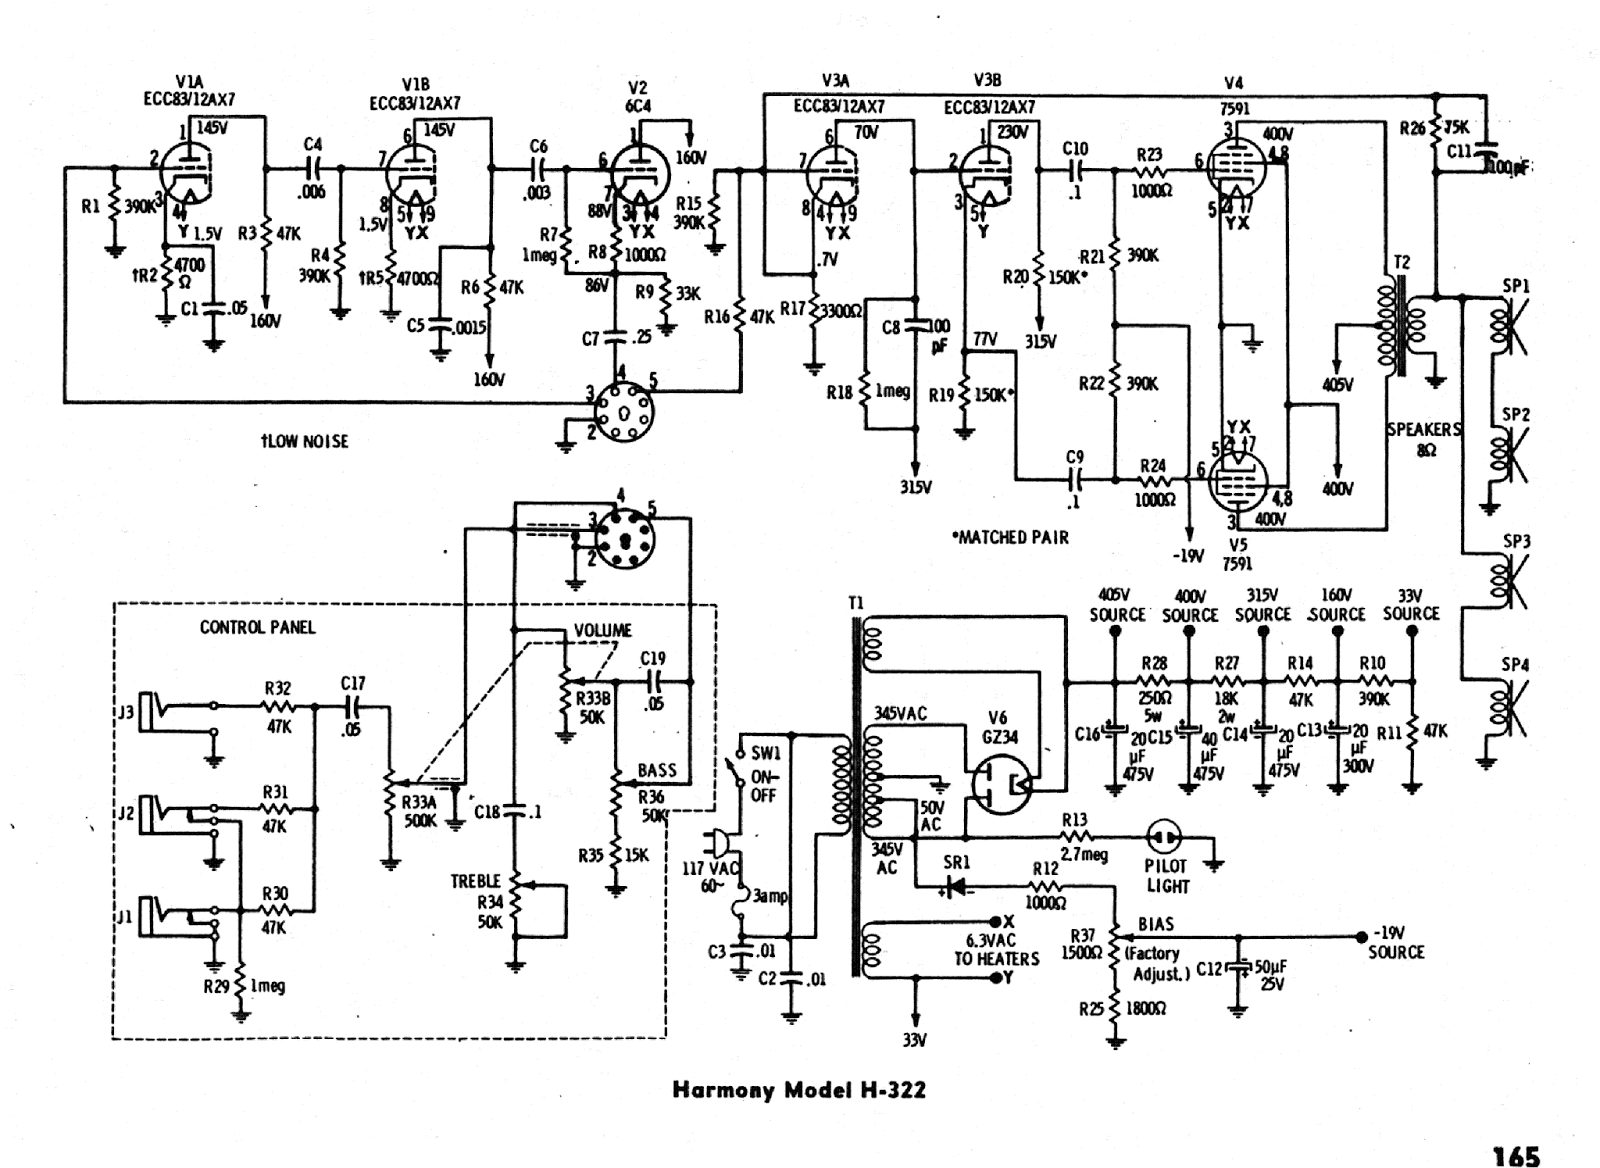 harmony amp schematic judybox revival: october 2013 gretsch amp schematic #4